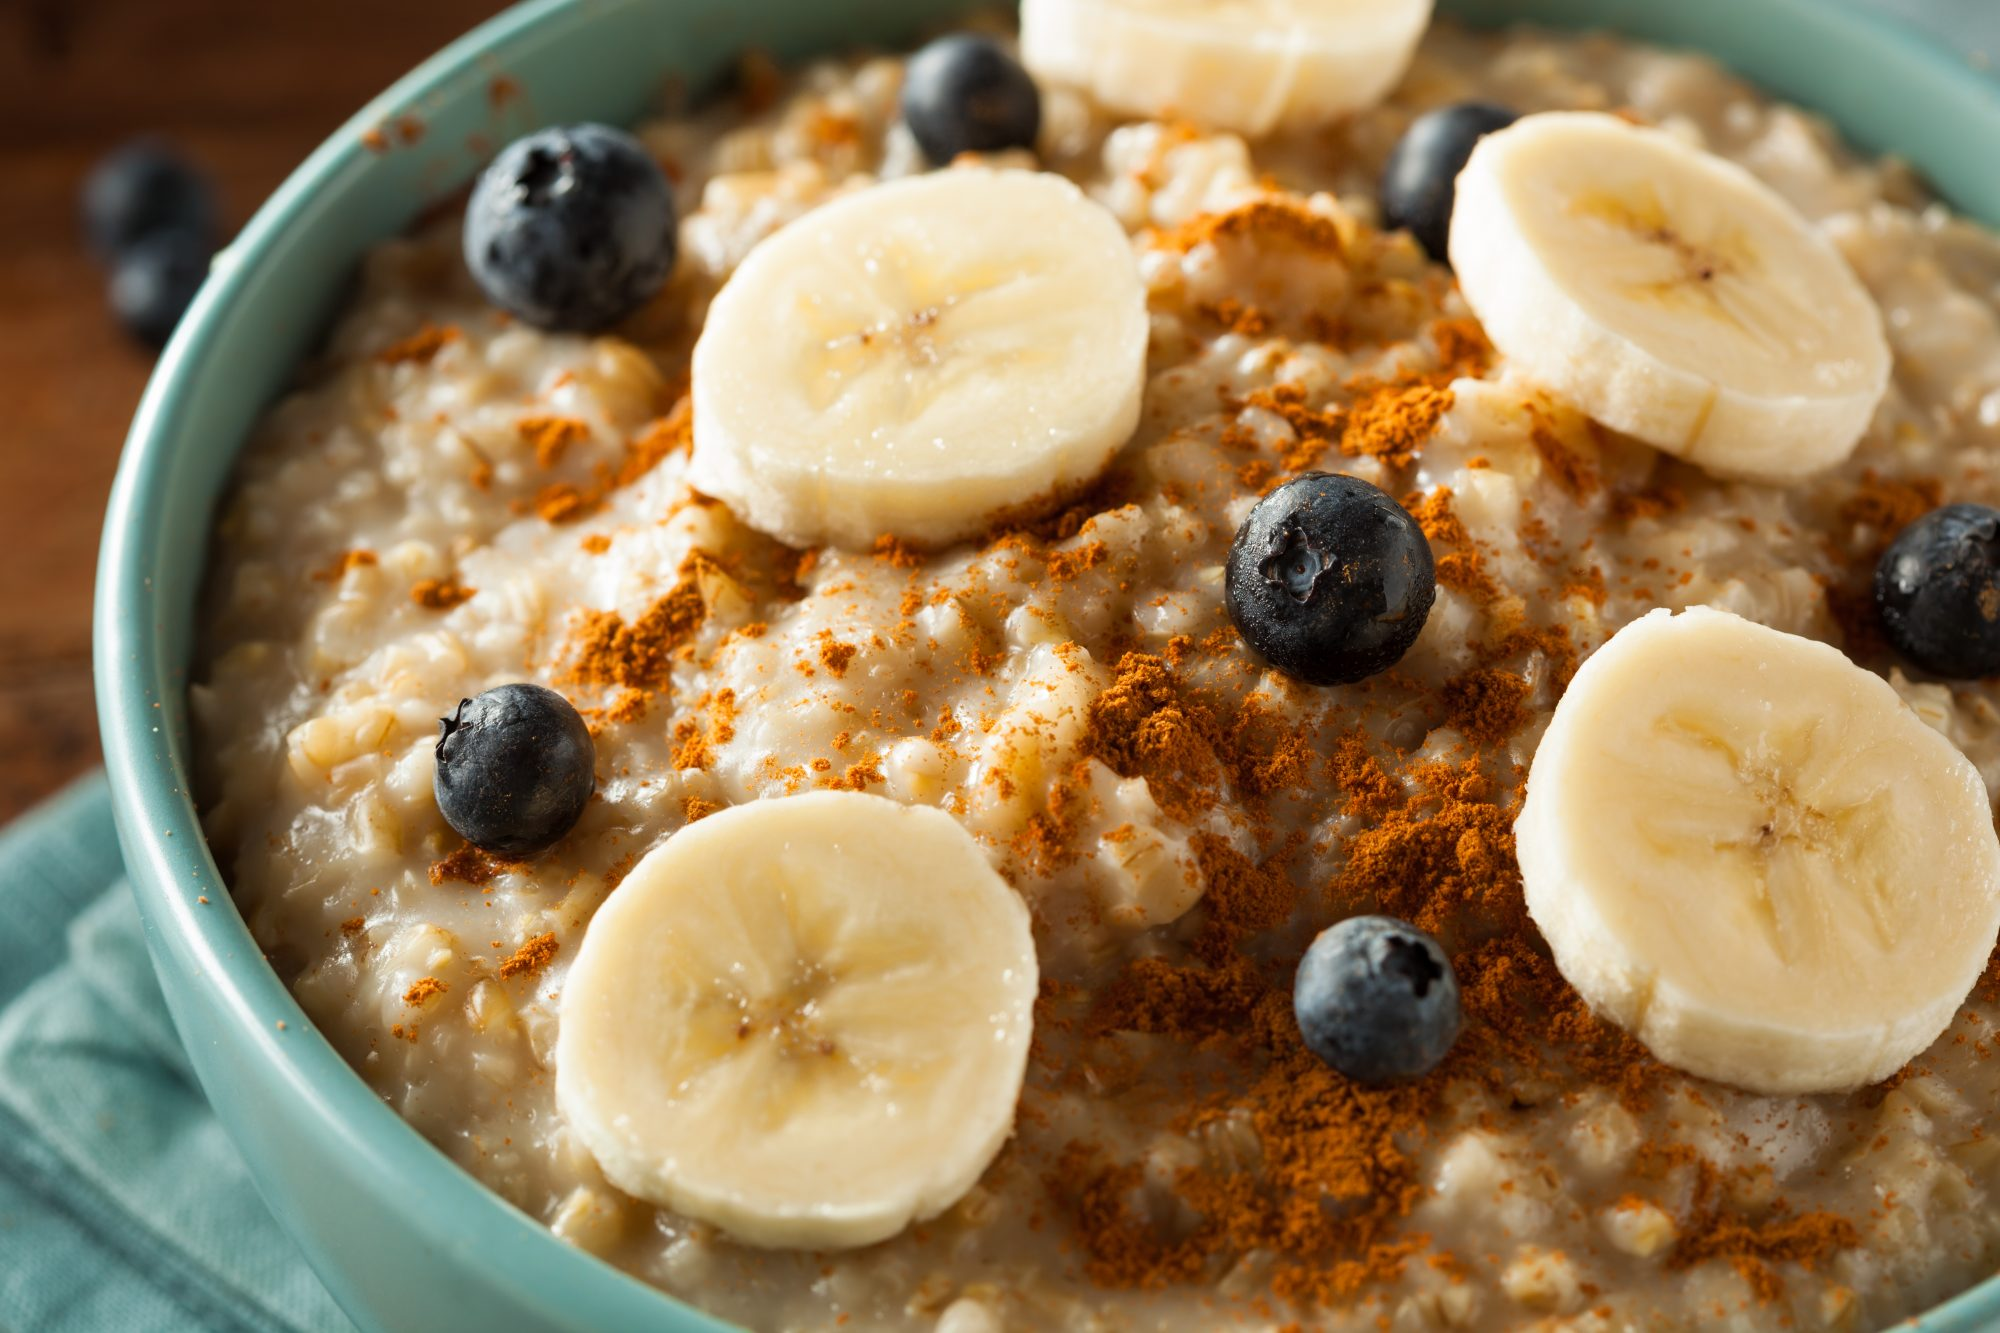 How to Make Simple, Tasty Oatmeal on the Stove